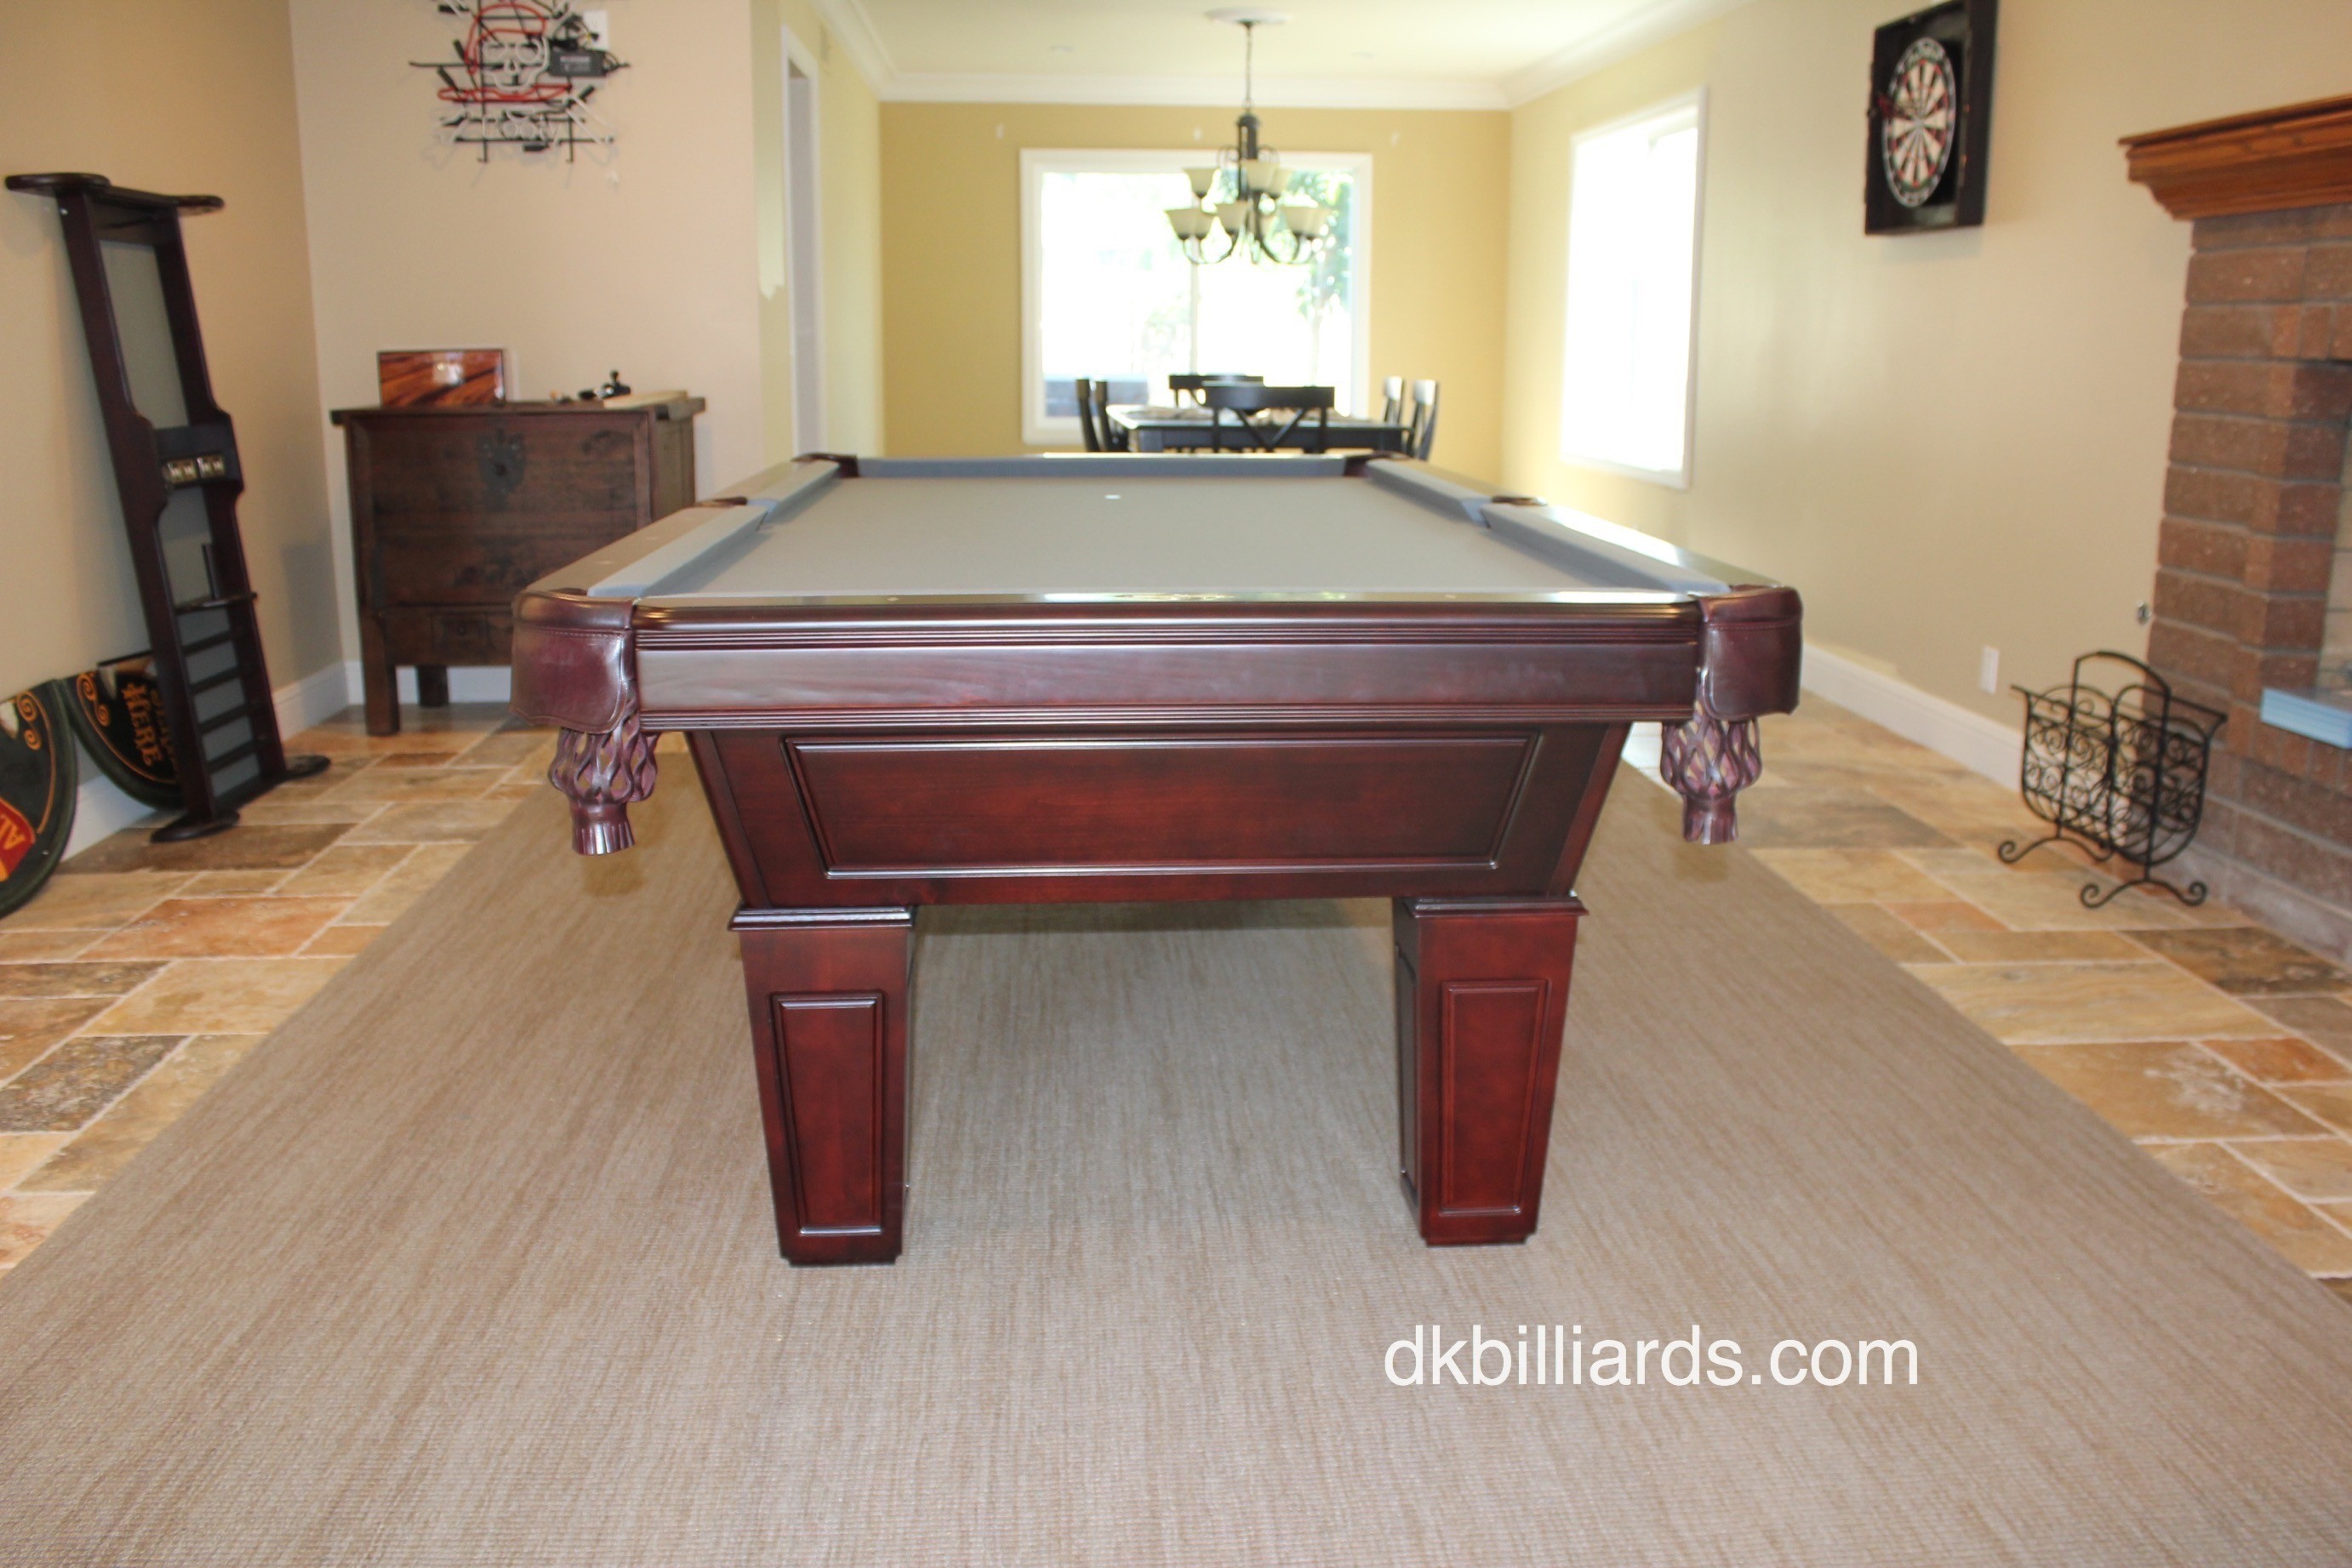 High Quality Our Customer Chose To Use A Low Pile Rug Beneath The Pool Table To Create A  Visual Anchor And Dampen The Noise Of Ball To Ball Contact. Placing A Rug  Under ...